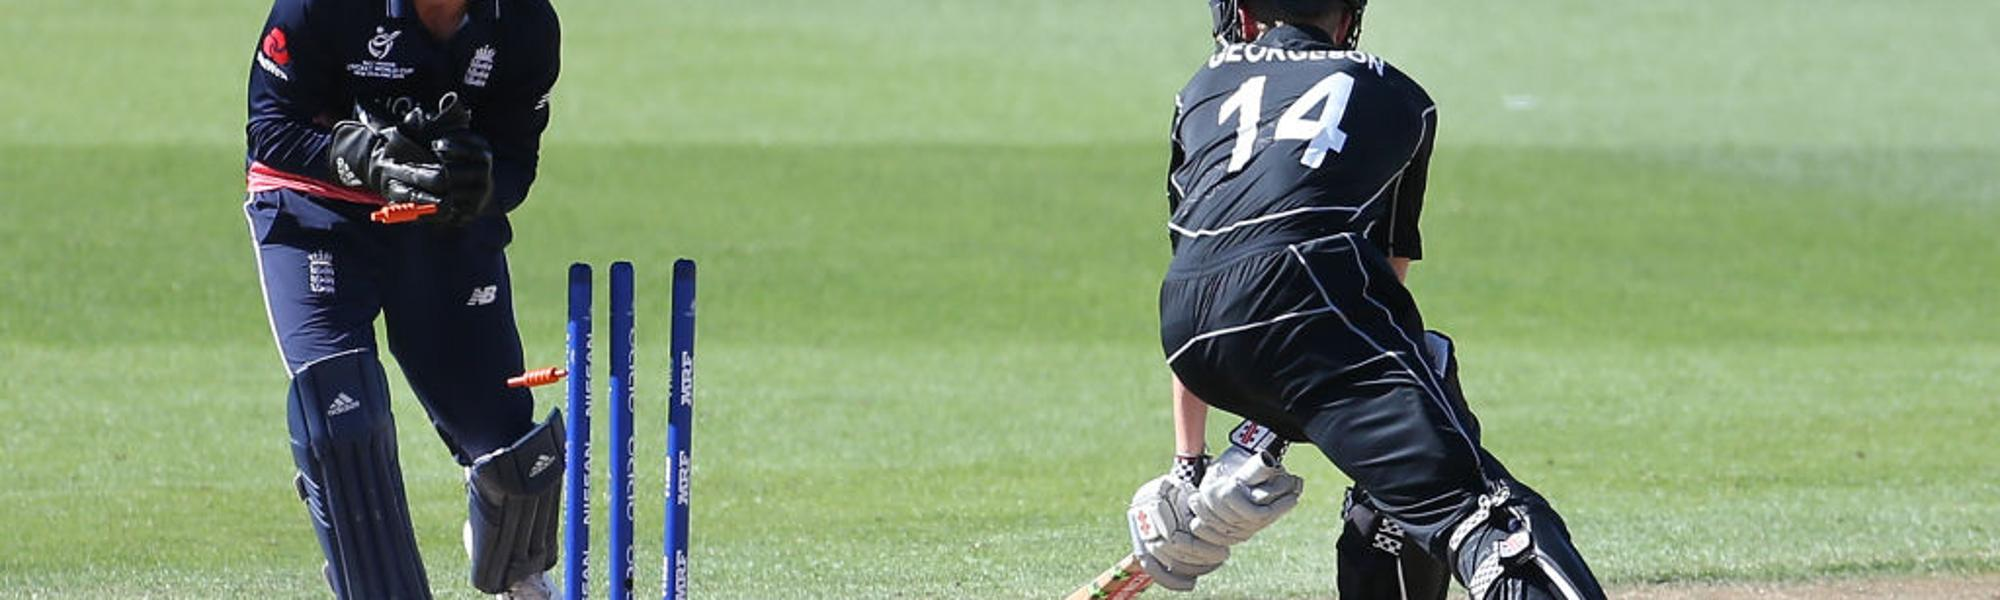 Luke Georgeson of New Zealand is run out during the ICC U19 Cricket World Cup .jpg